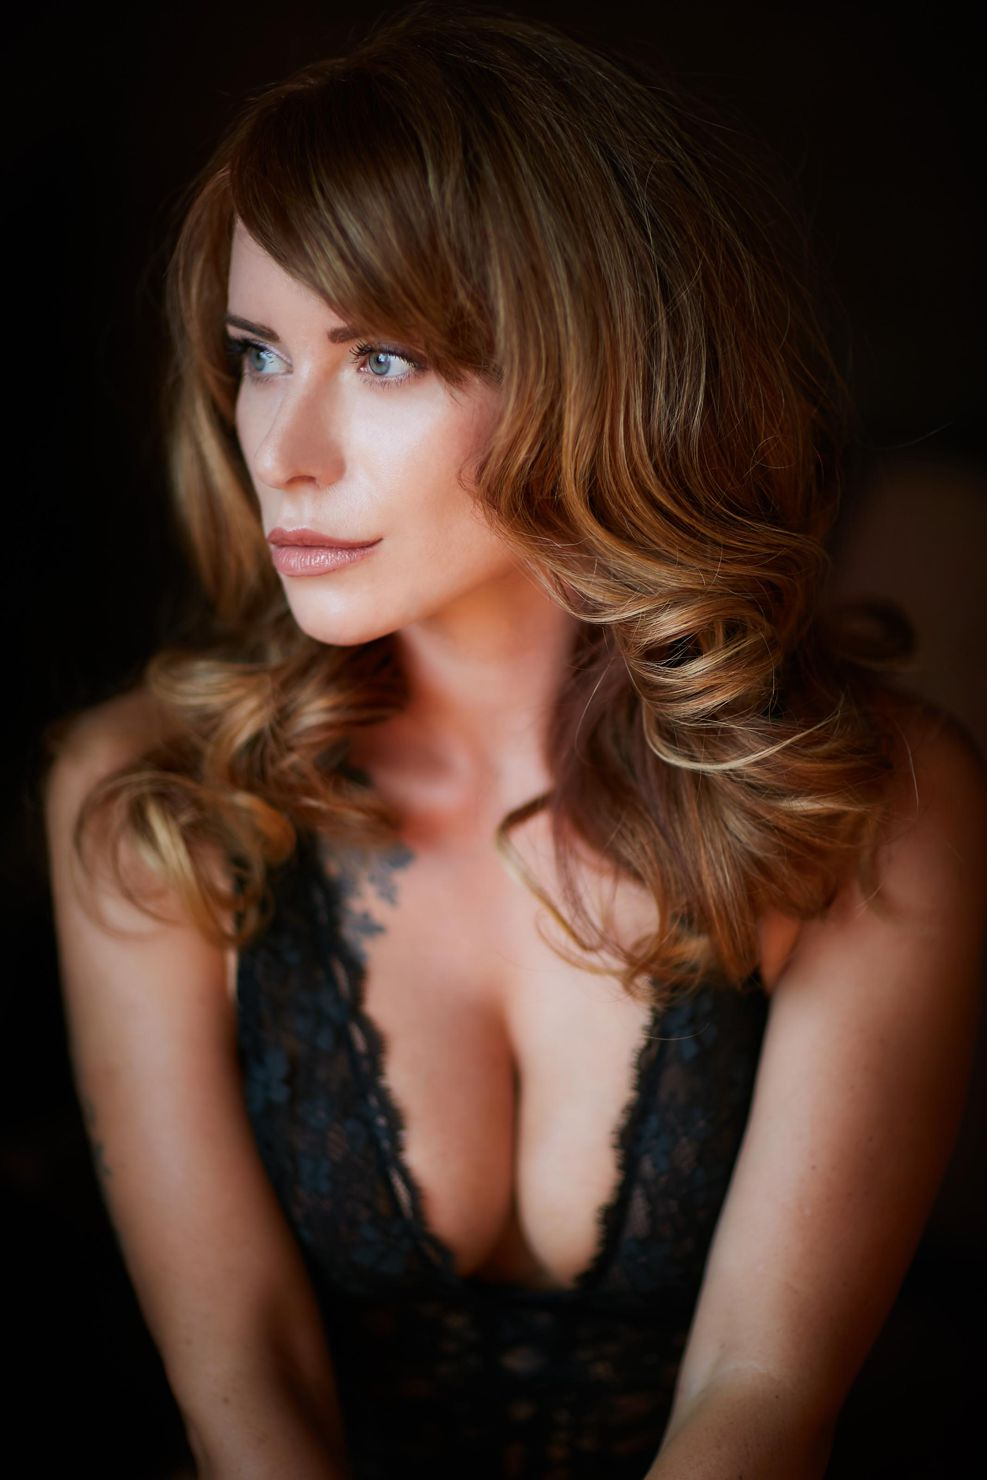 boudoir photography chicago classy - Boudoir Session -  A Gift for Her